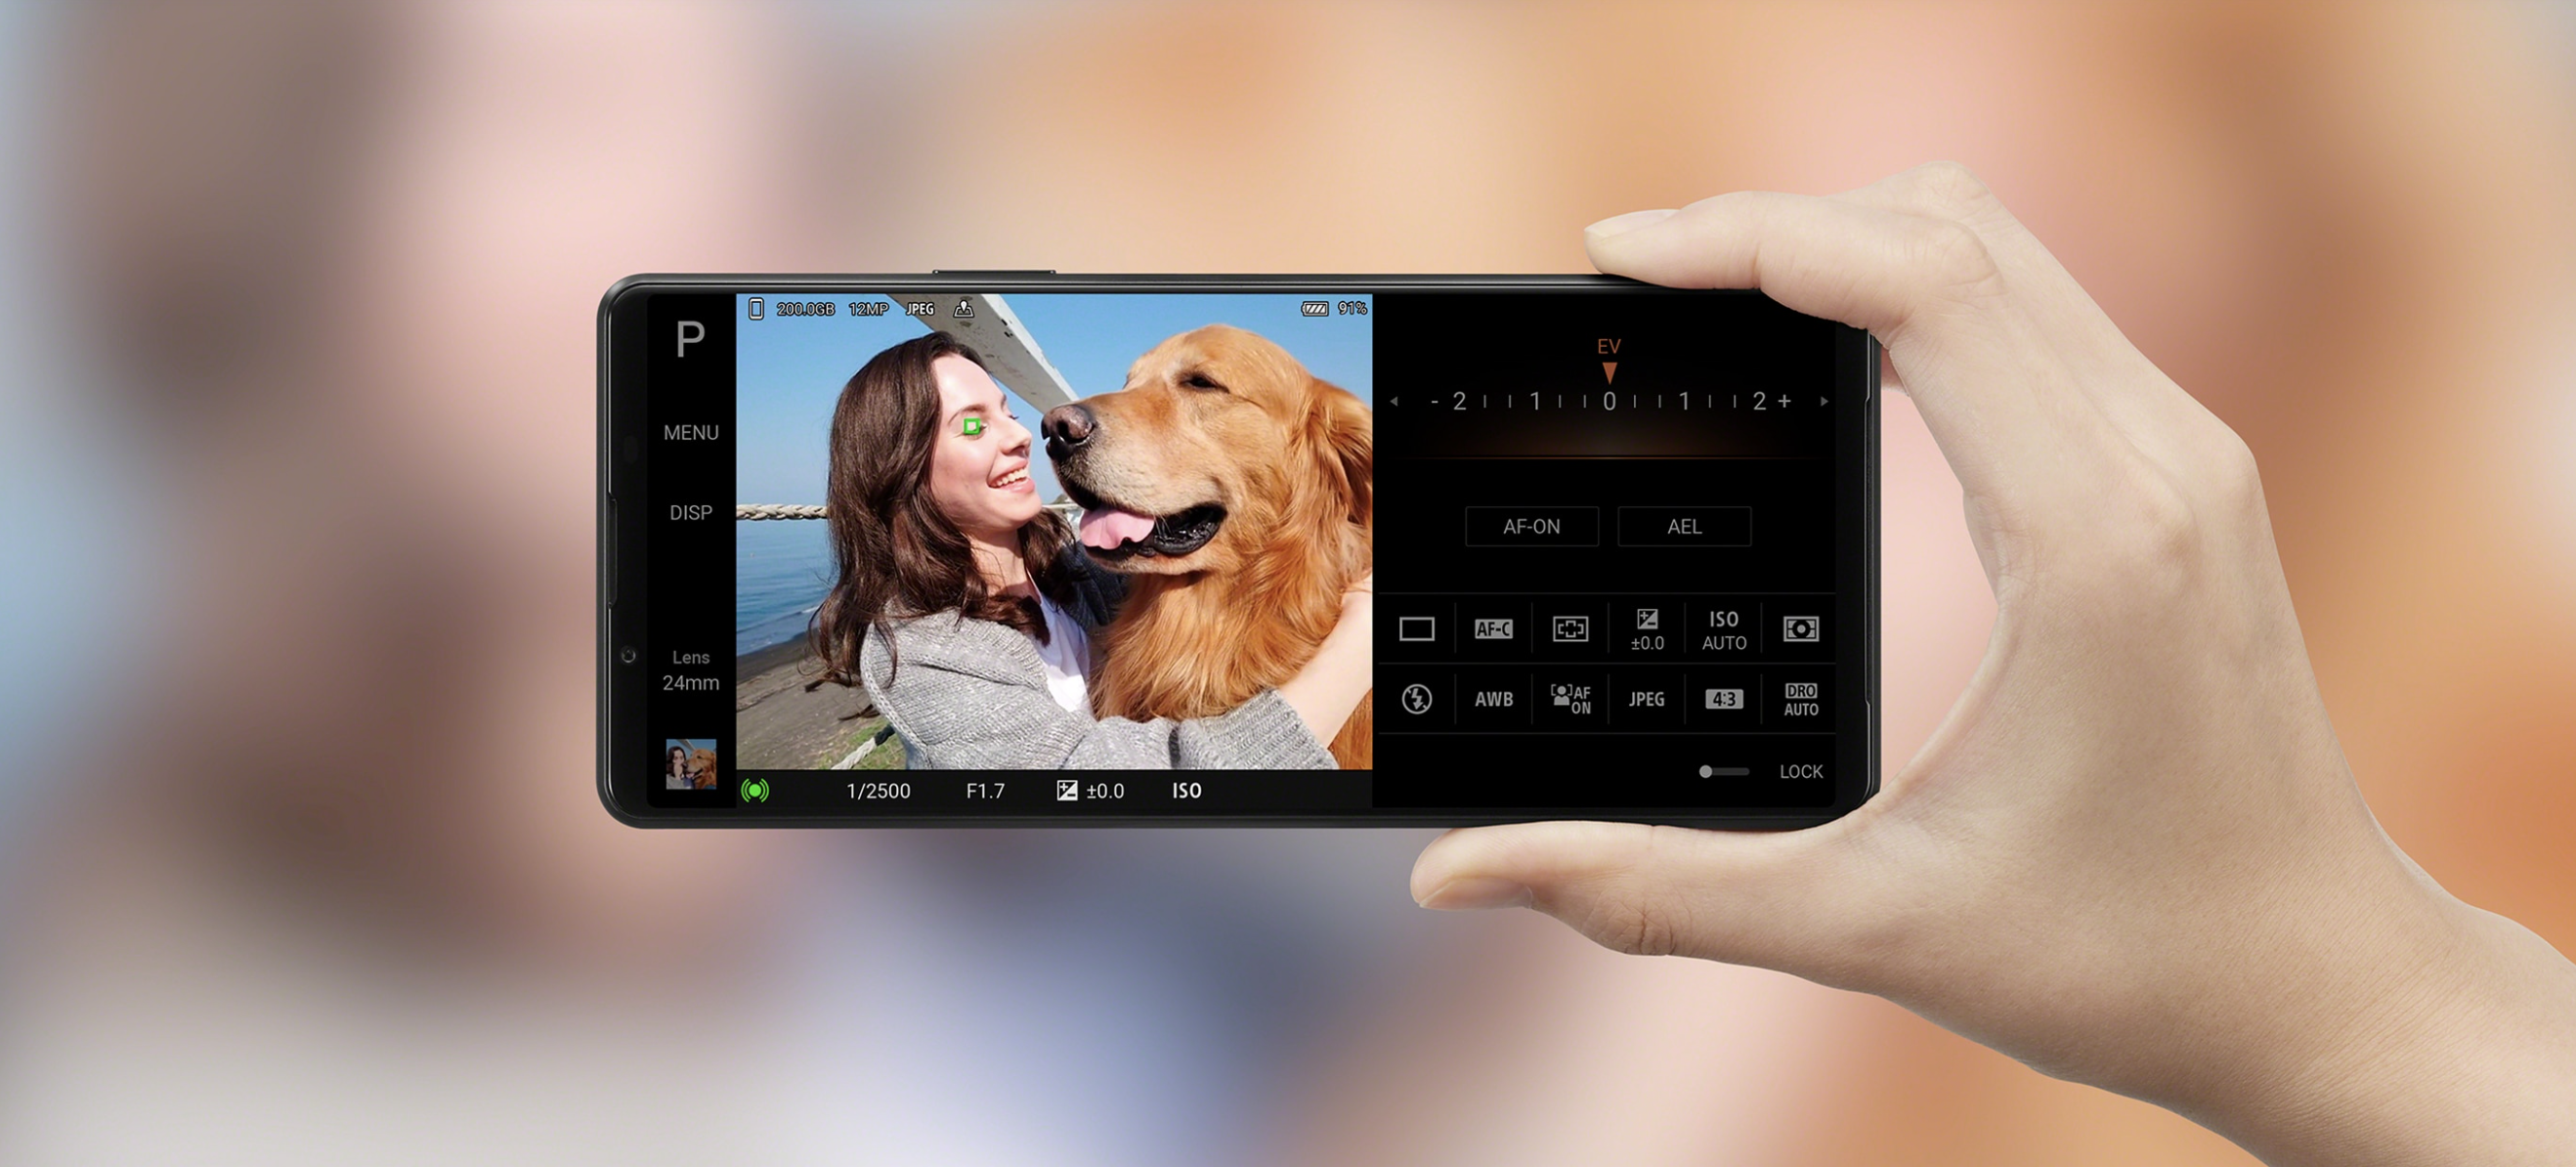 Xperia 1 III Camera App Manual Mode Control